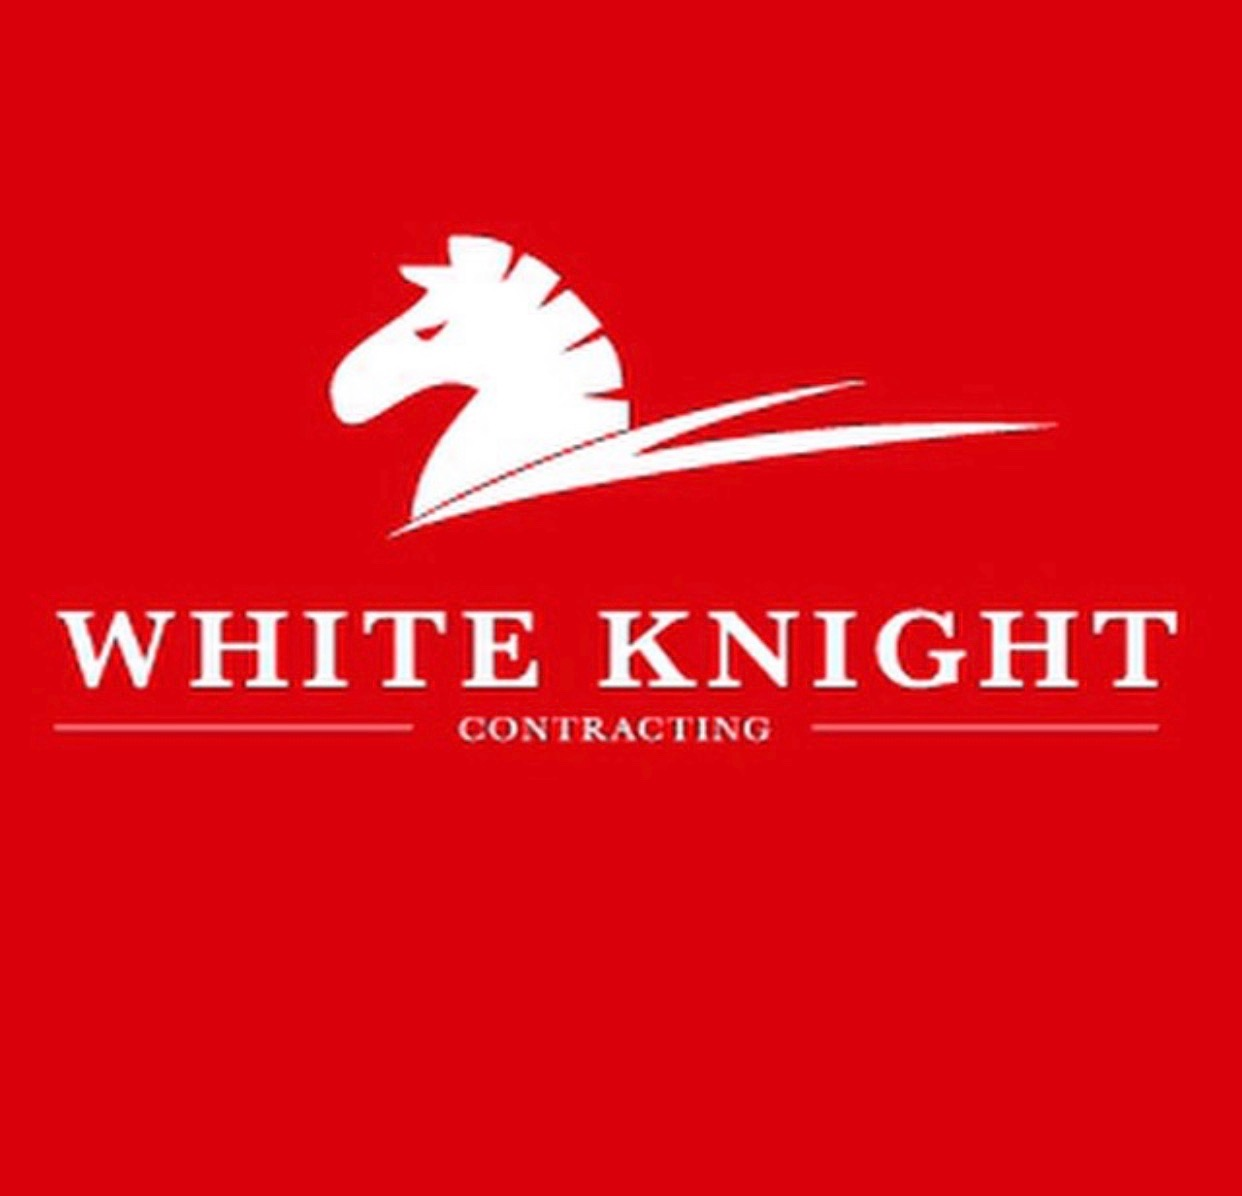 White Knight Contracting